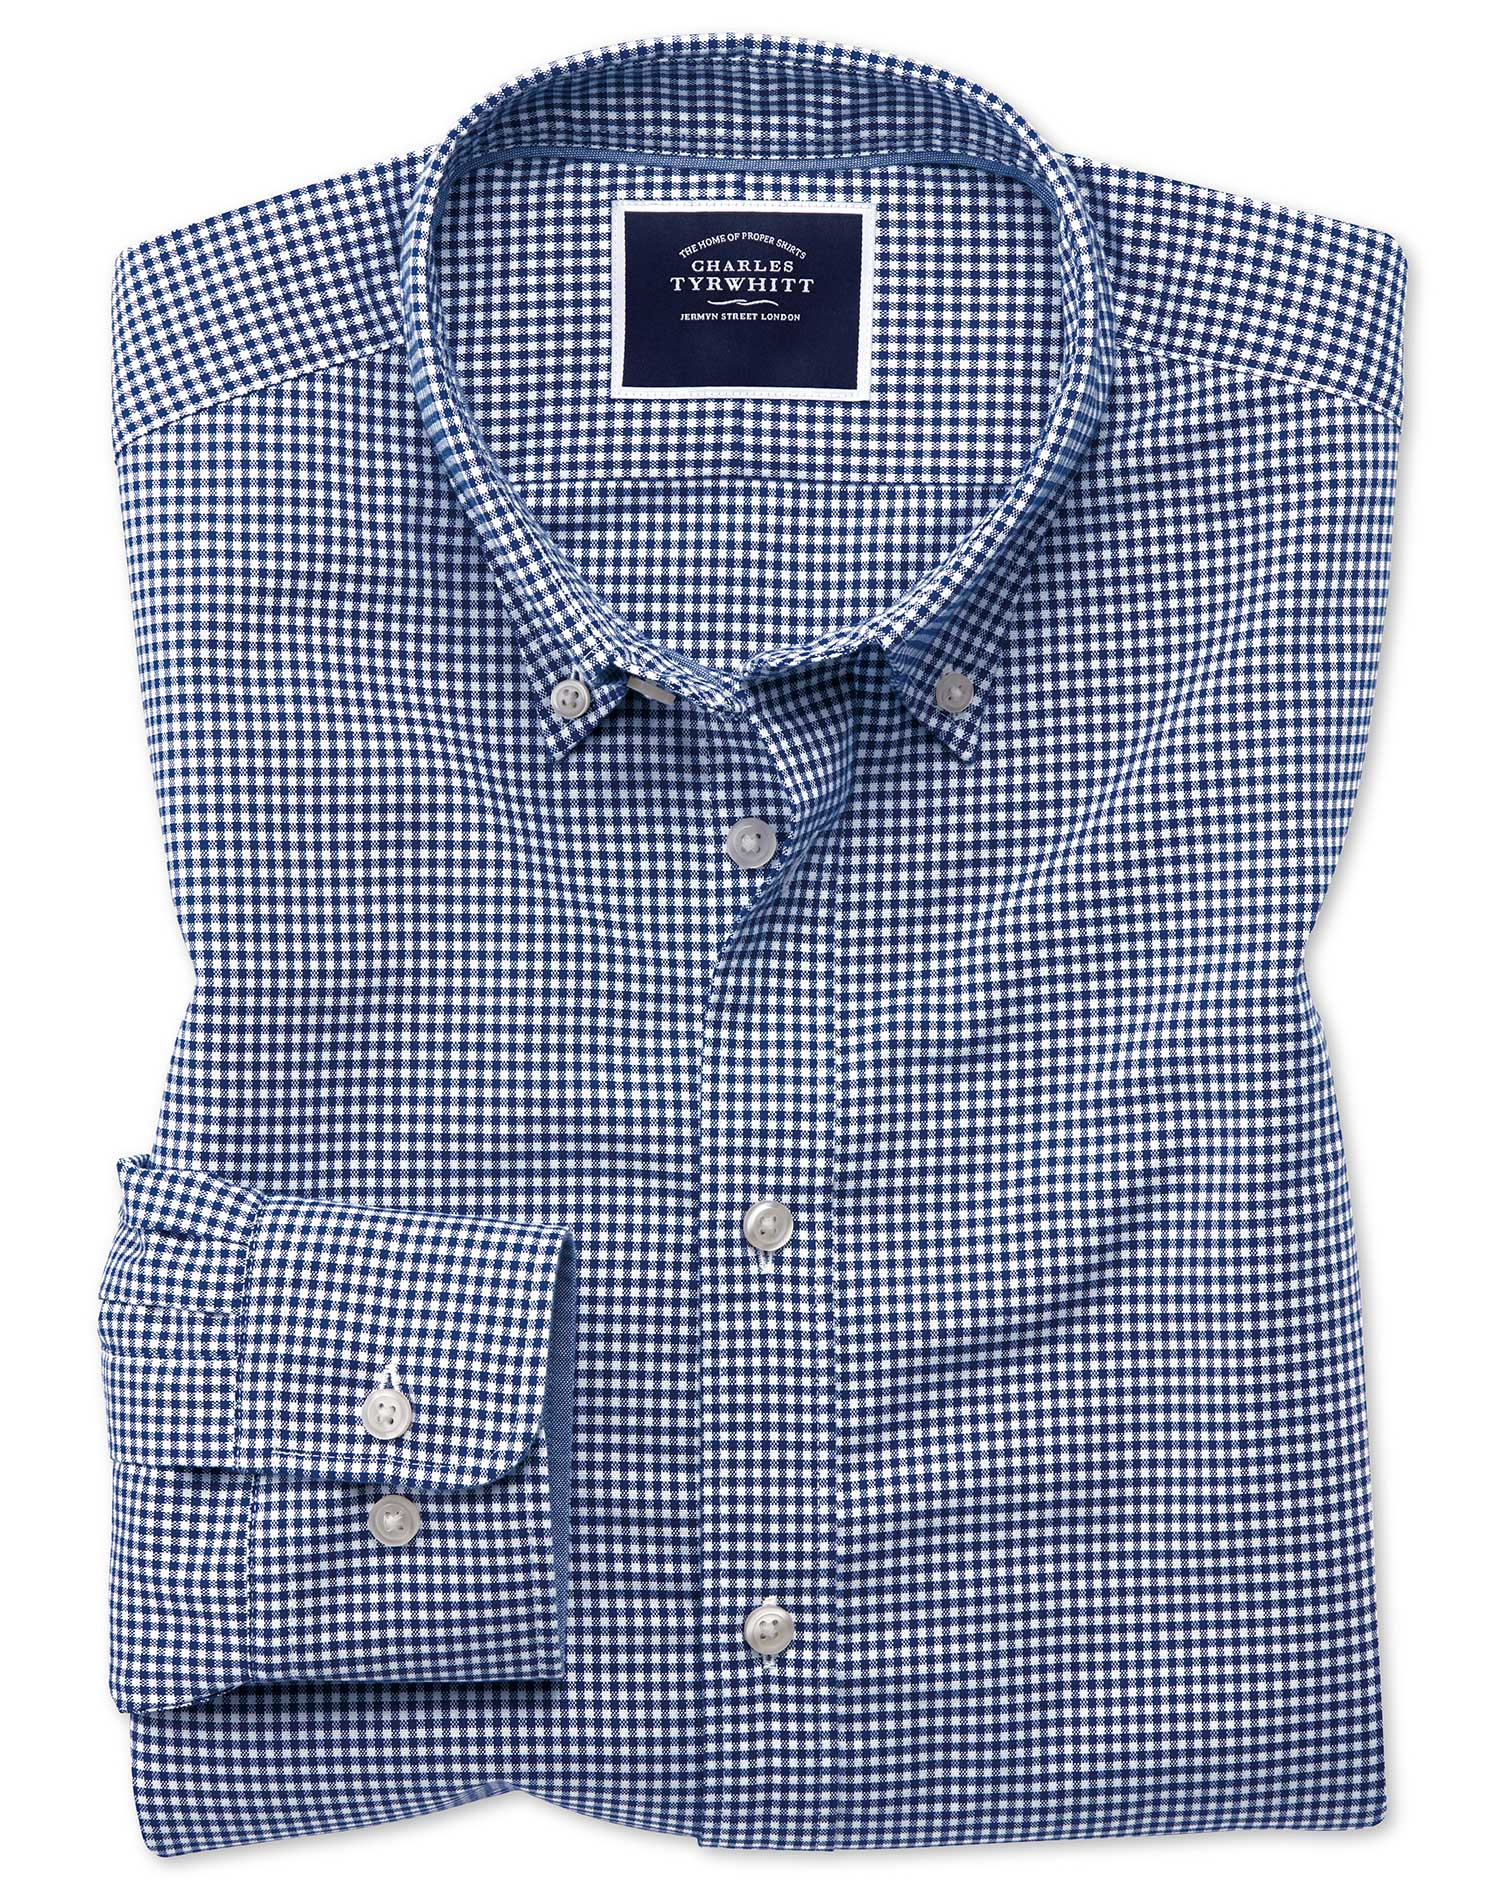 Extra Slim Fit Royal Blue Gingham Soft Washed Non-Iron Stretch Cotton Shirt Single Cuff Size Medium